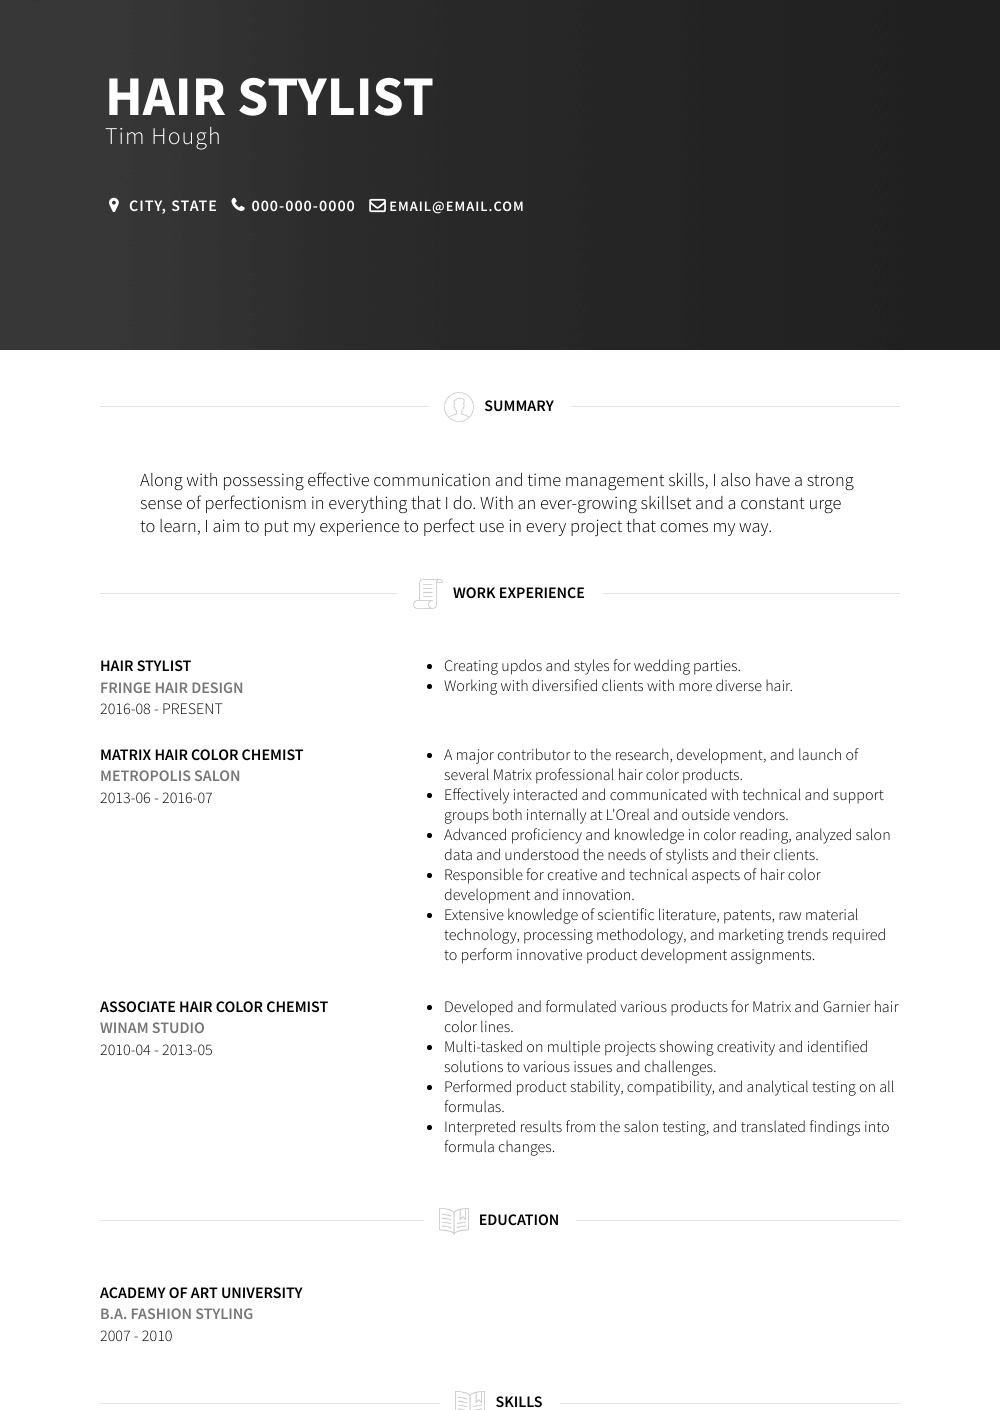 Hair Stylist Resume Sample and Template